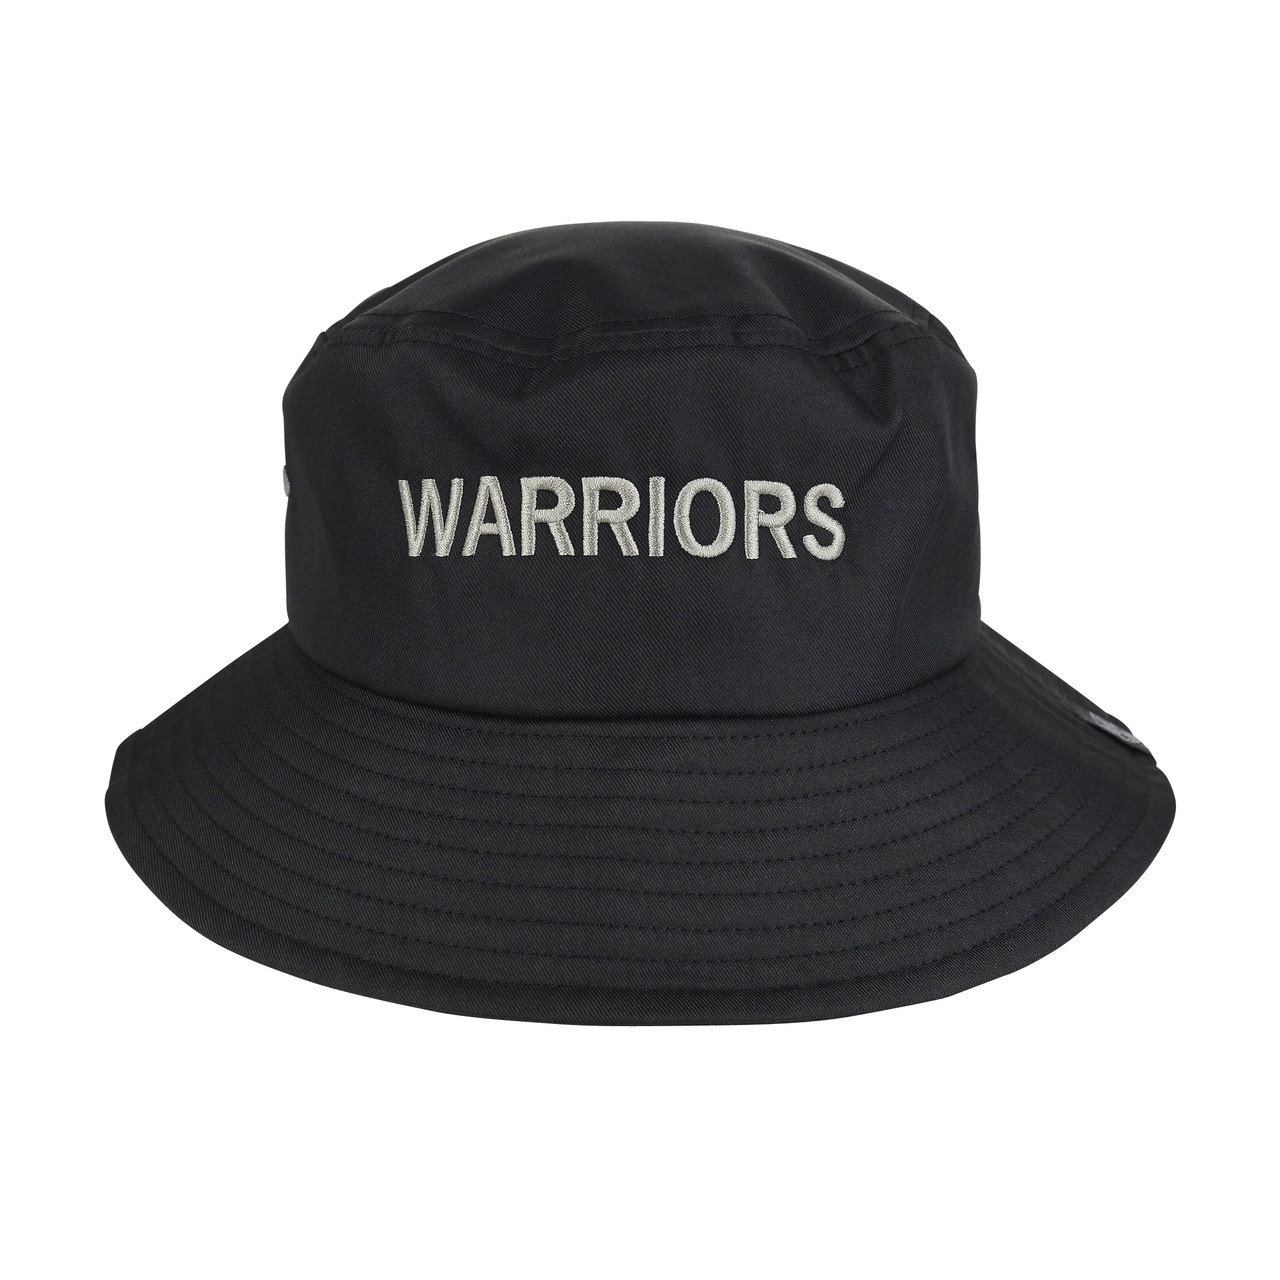 Warriors 2019 Classic Club Bucket Hat - Warriors Superstore 65ce6c5305db